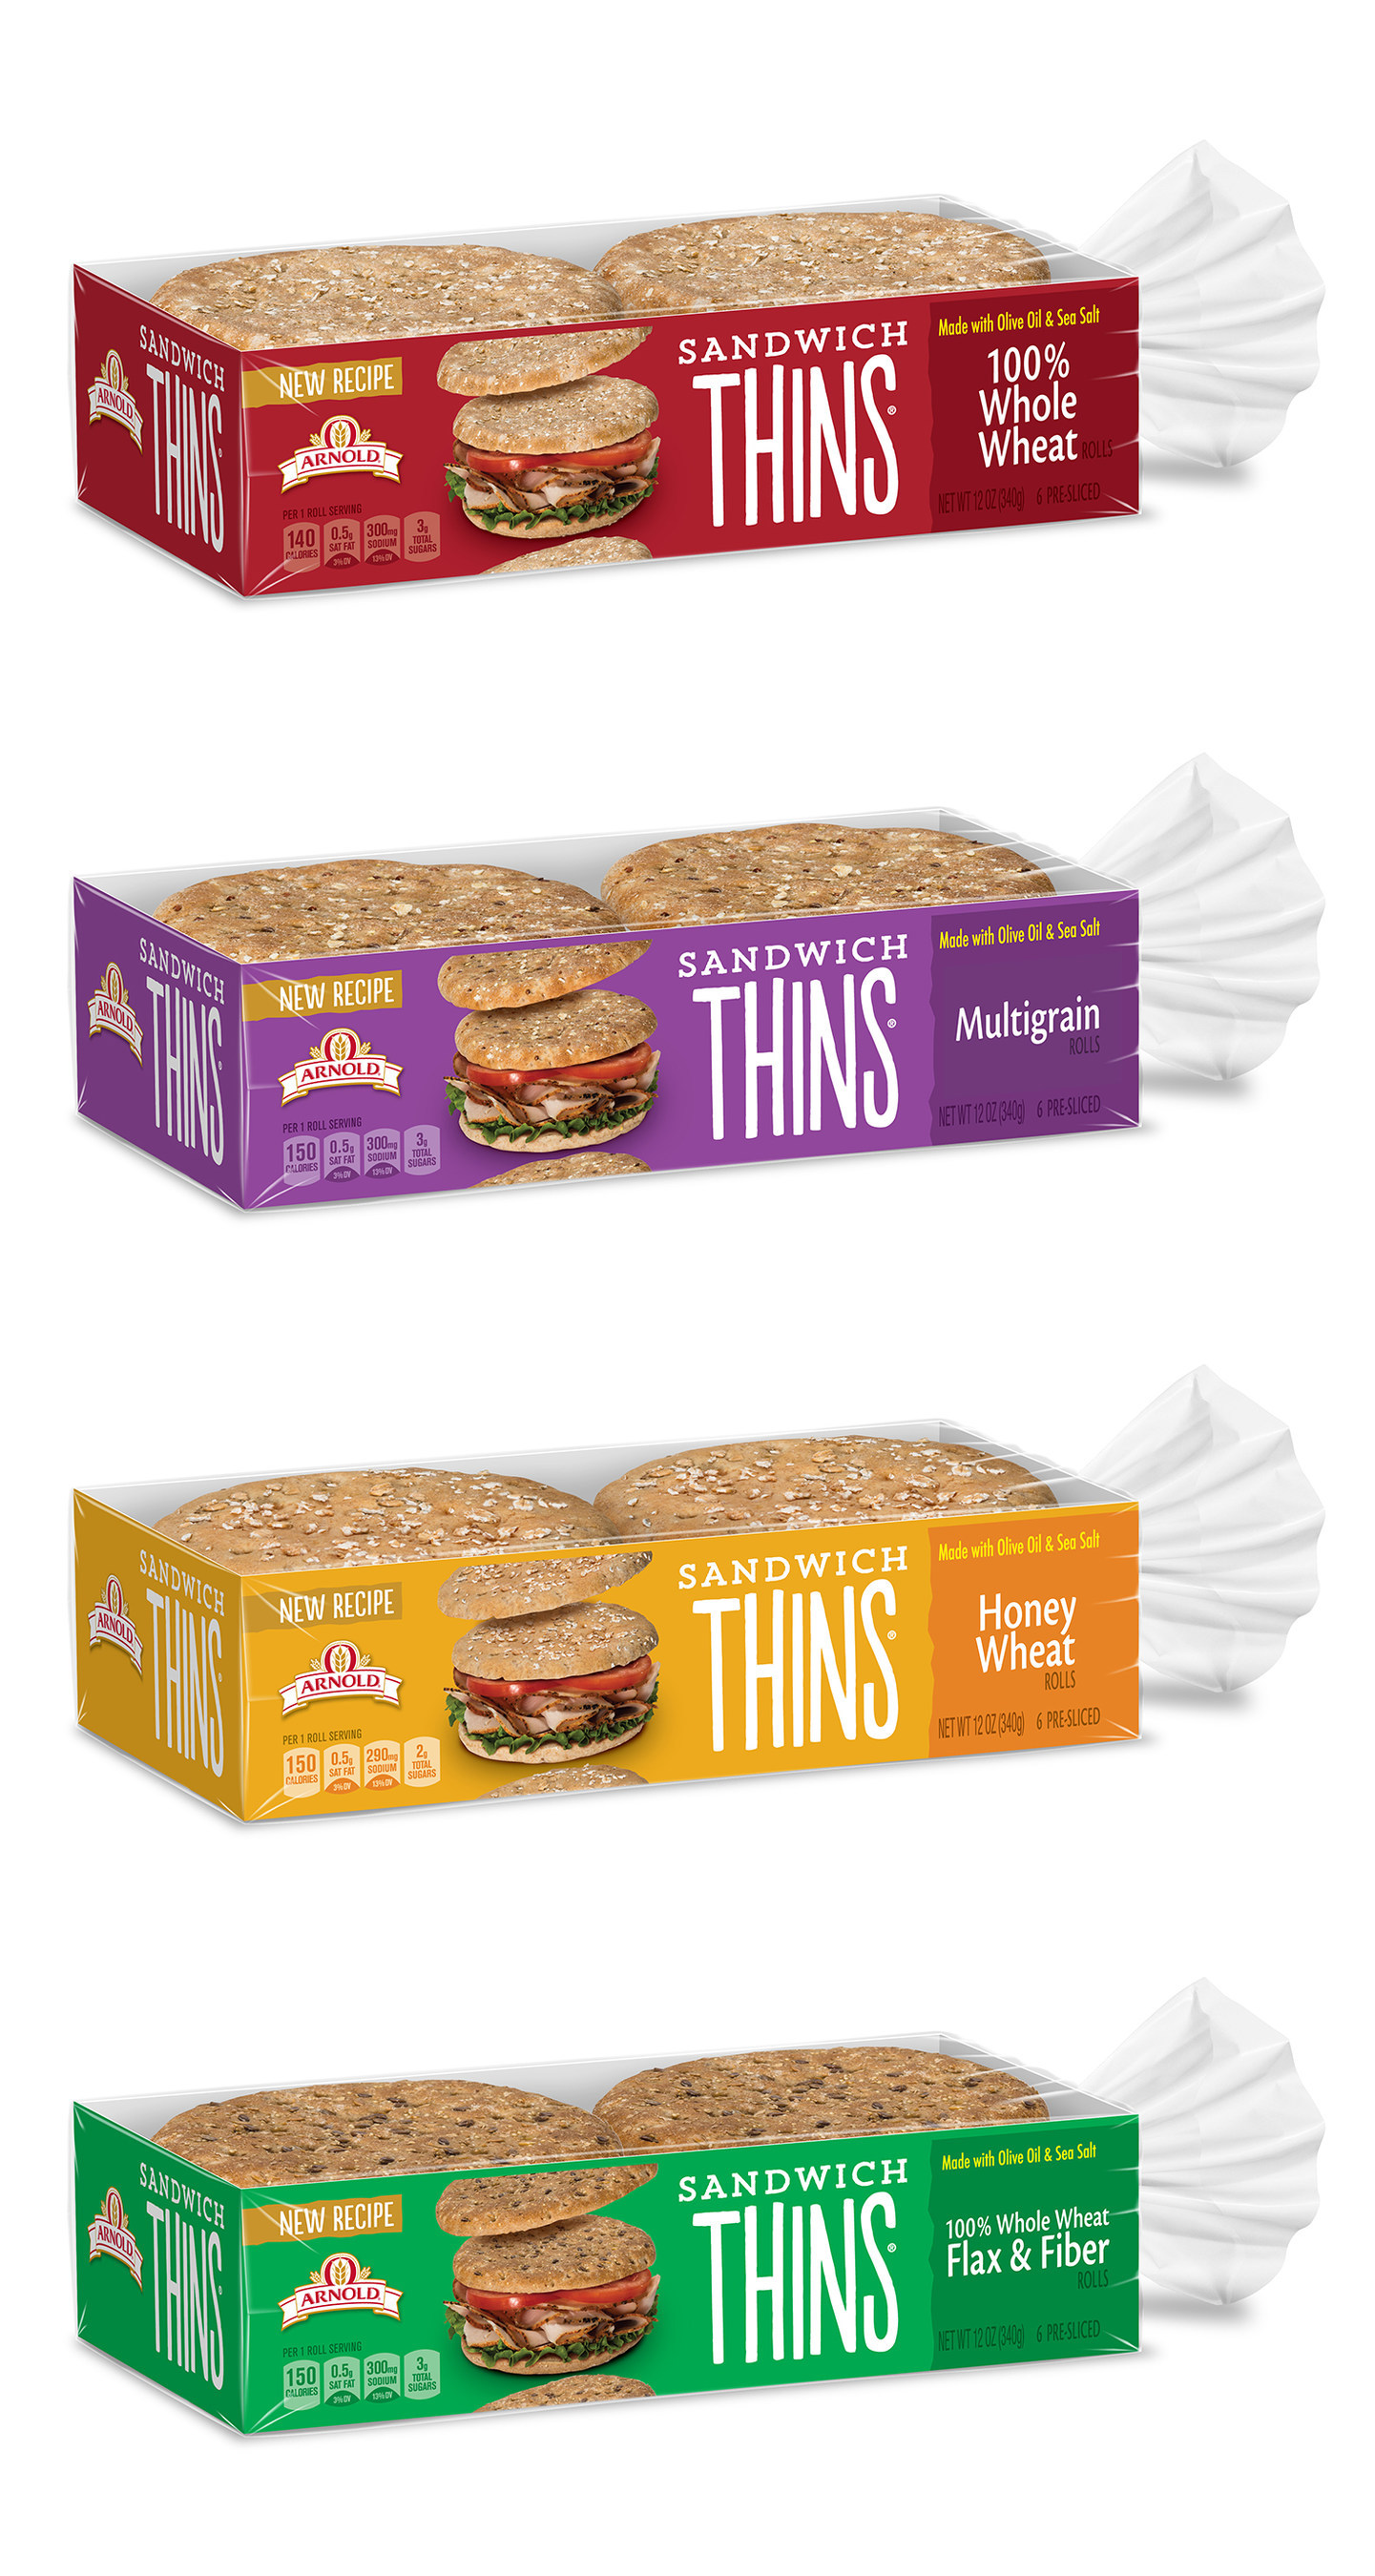 Arnold, Brownberry and Oroweat Bread Relaunch Sandwich Thins Rolls Nationwide